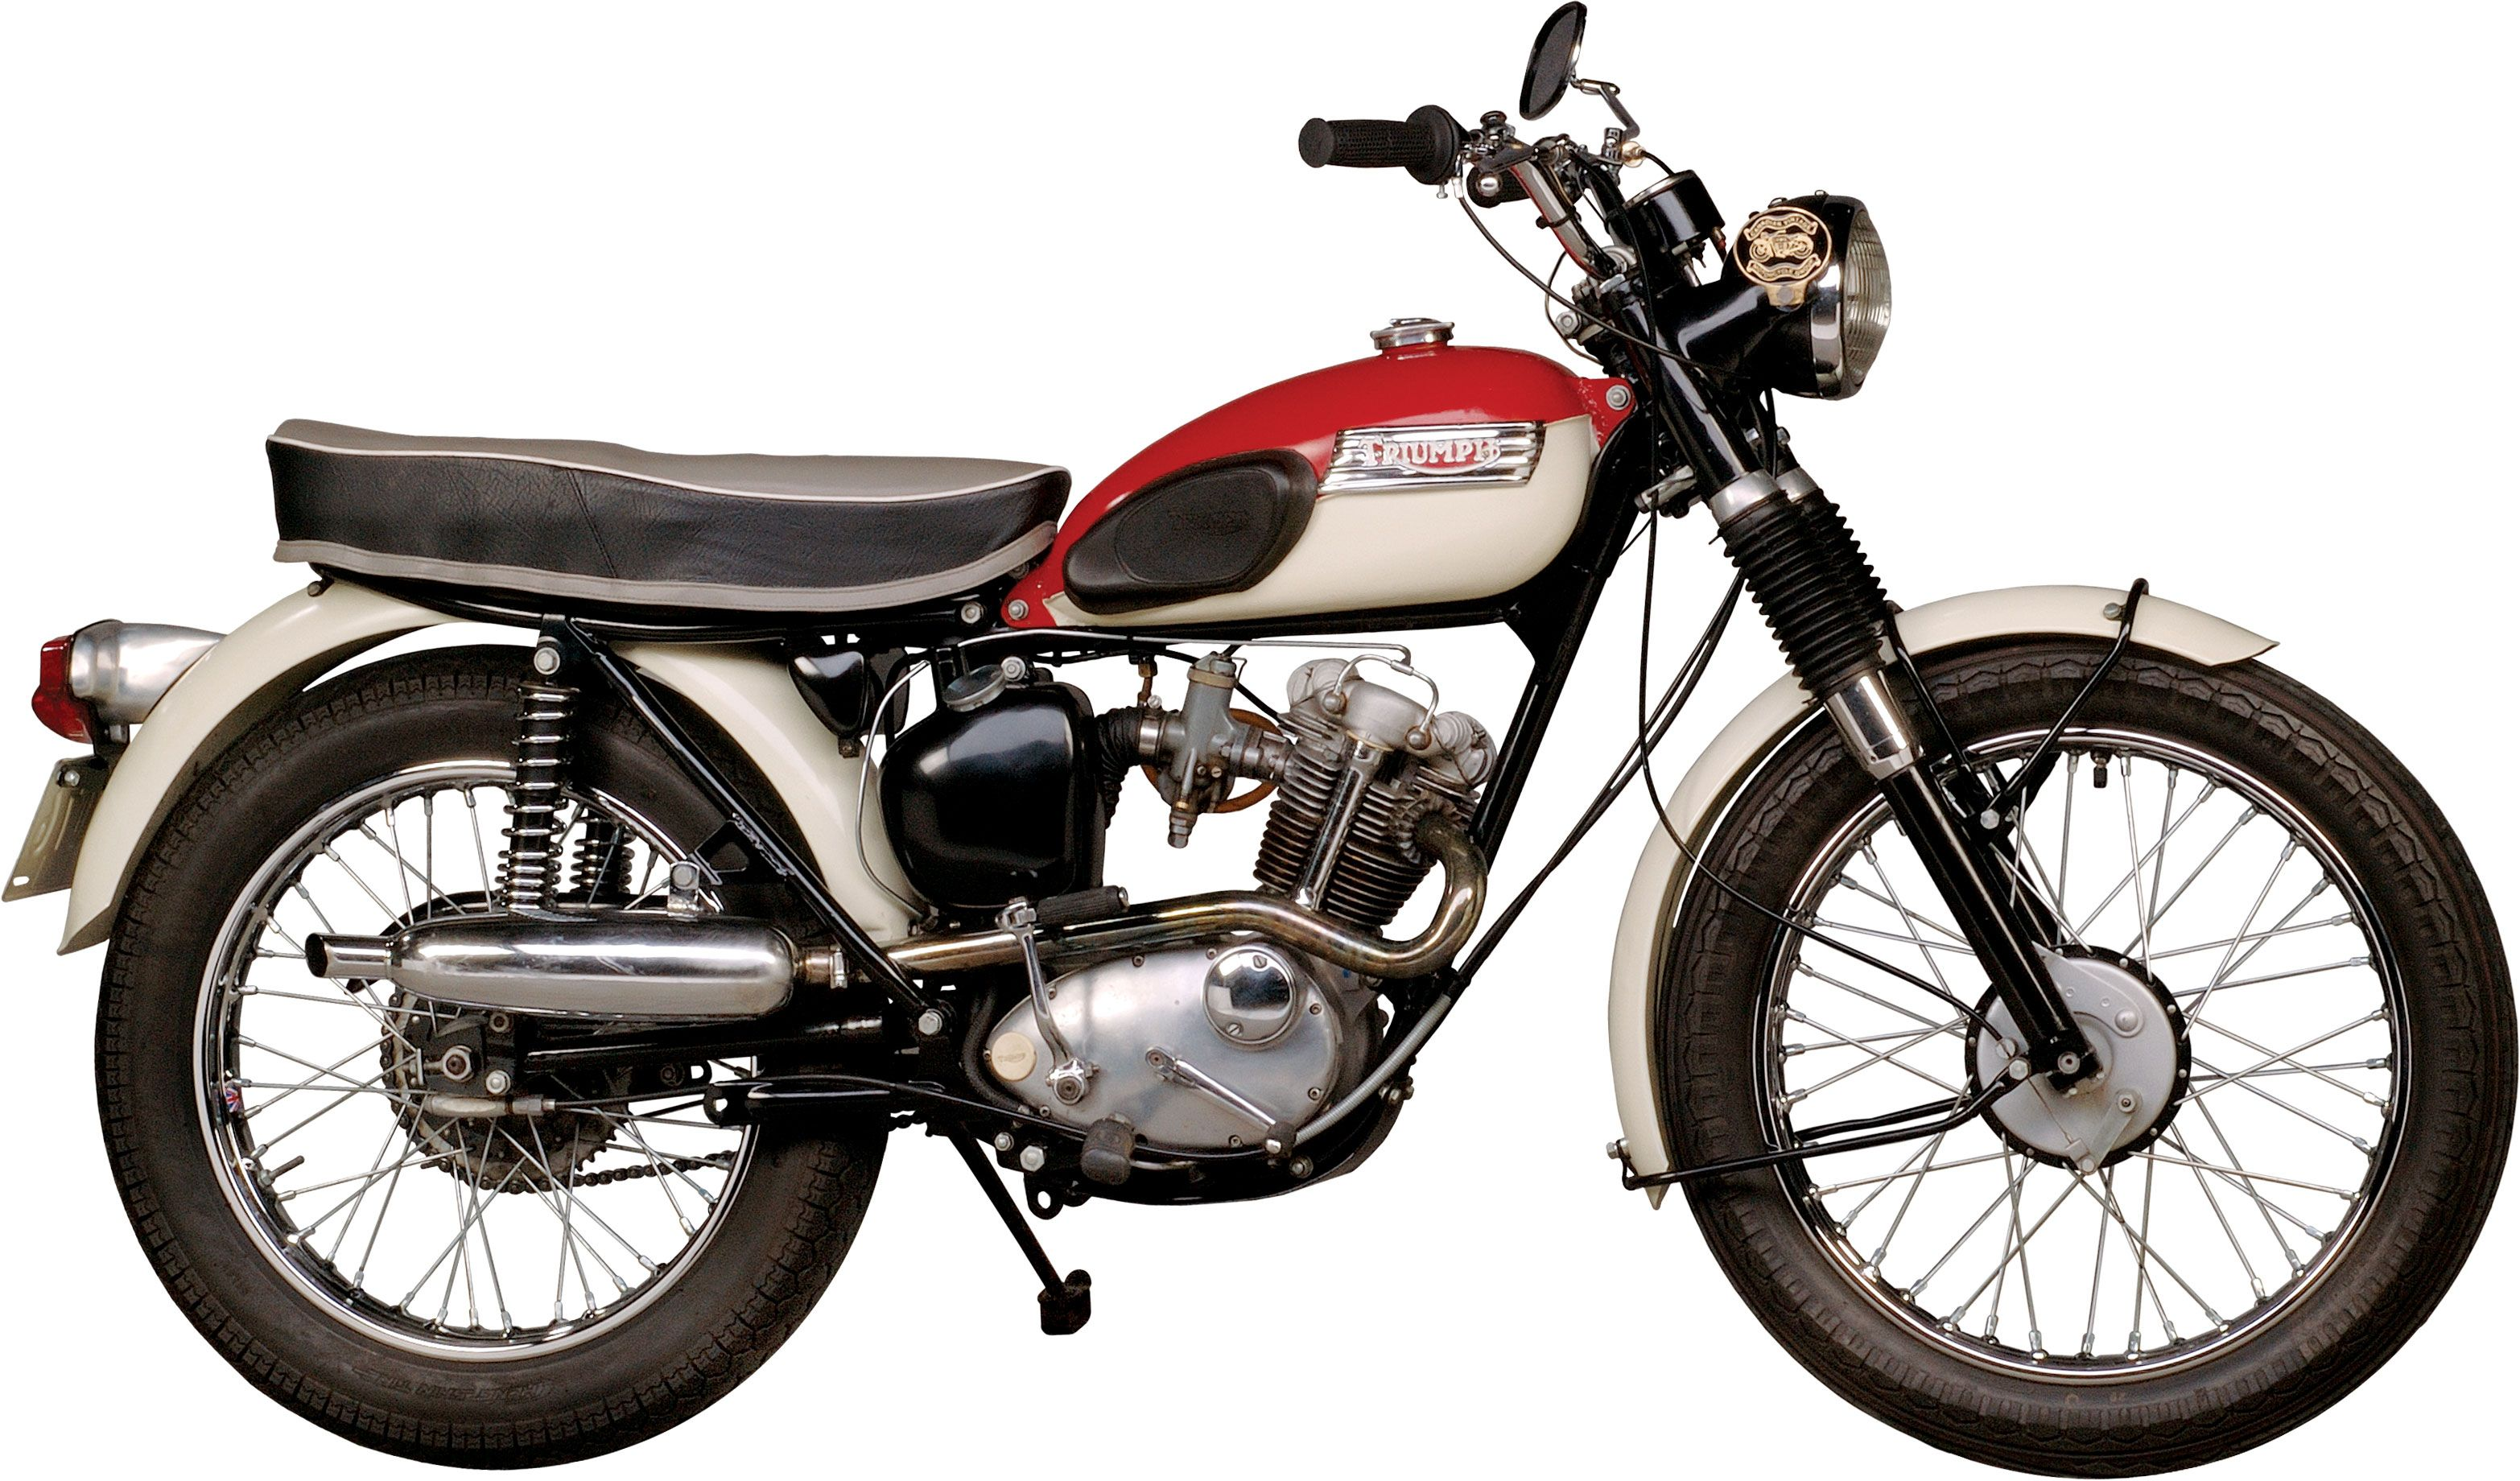 1952-1969 triumph tiger cub: the baby bonnie - classic british